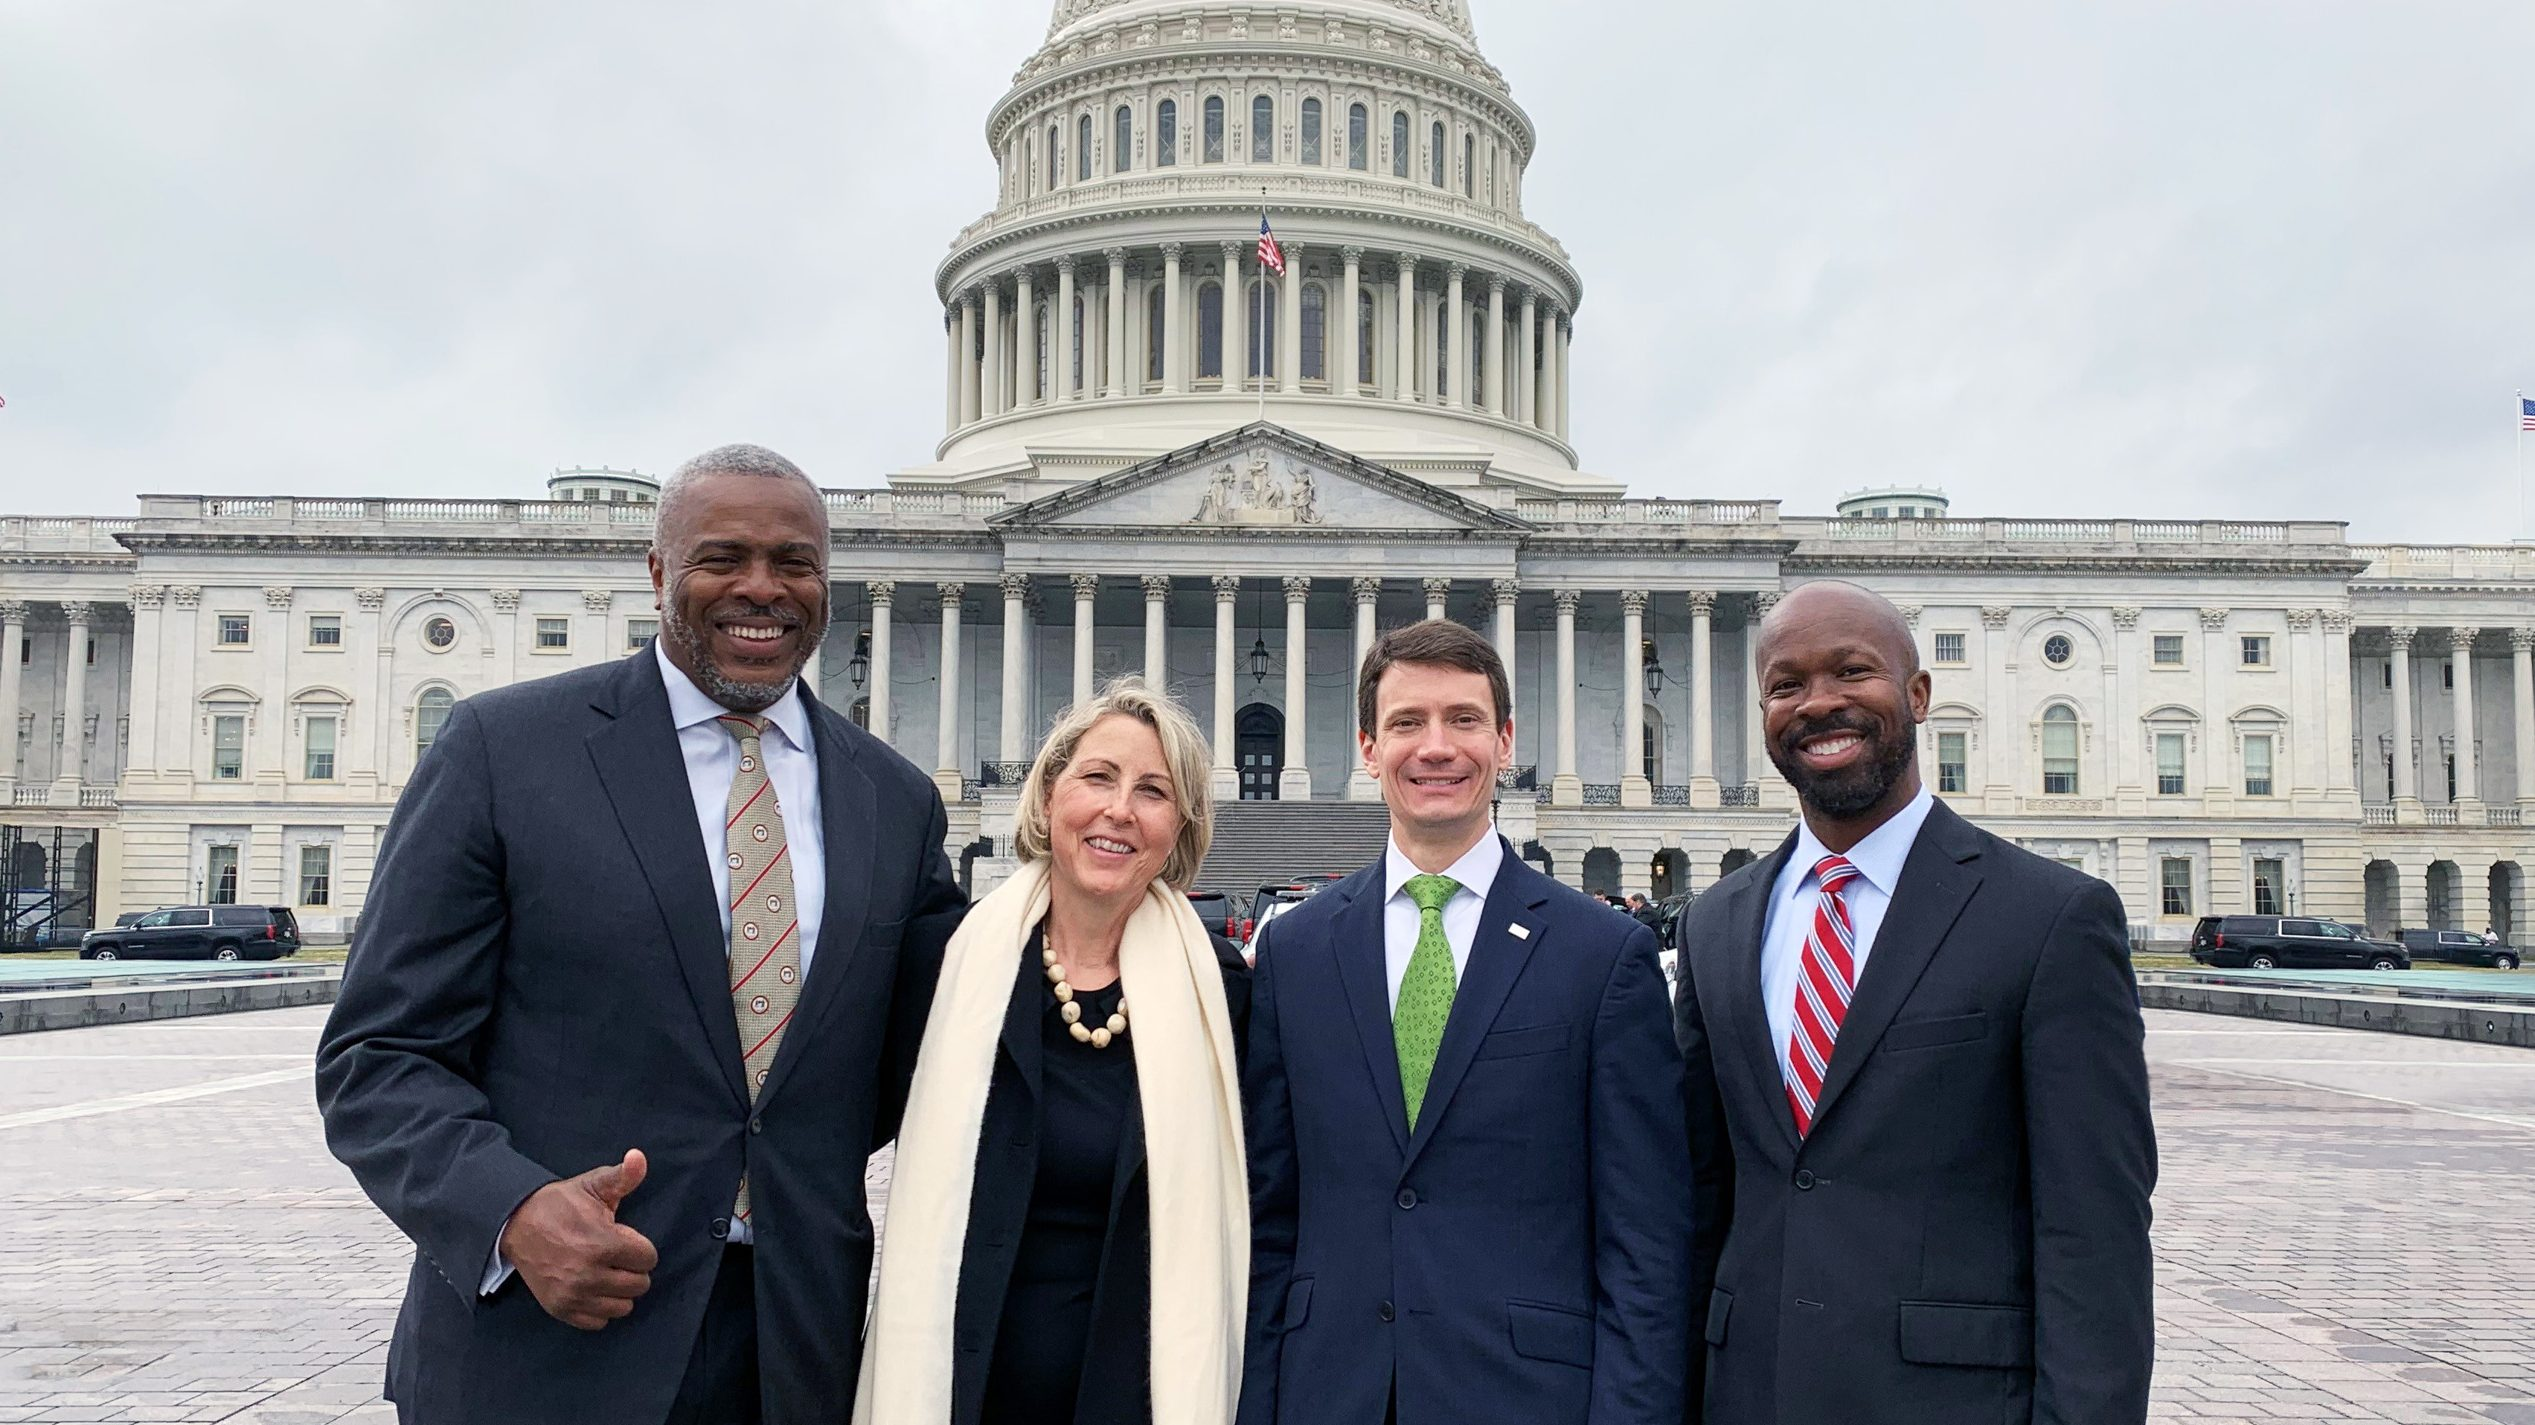 Robert L. Hillman Jr. '84, Athena N. Edmonds '83, John Gavenonis '98, and R. Erich Caulfield, SM '01, PhD '06, visited Capitol Hill in early 2020 to advocate for investing in science.